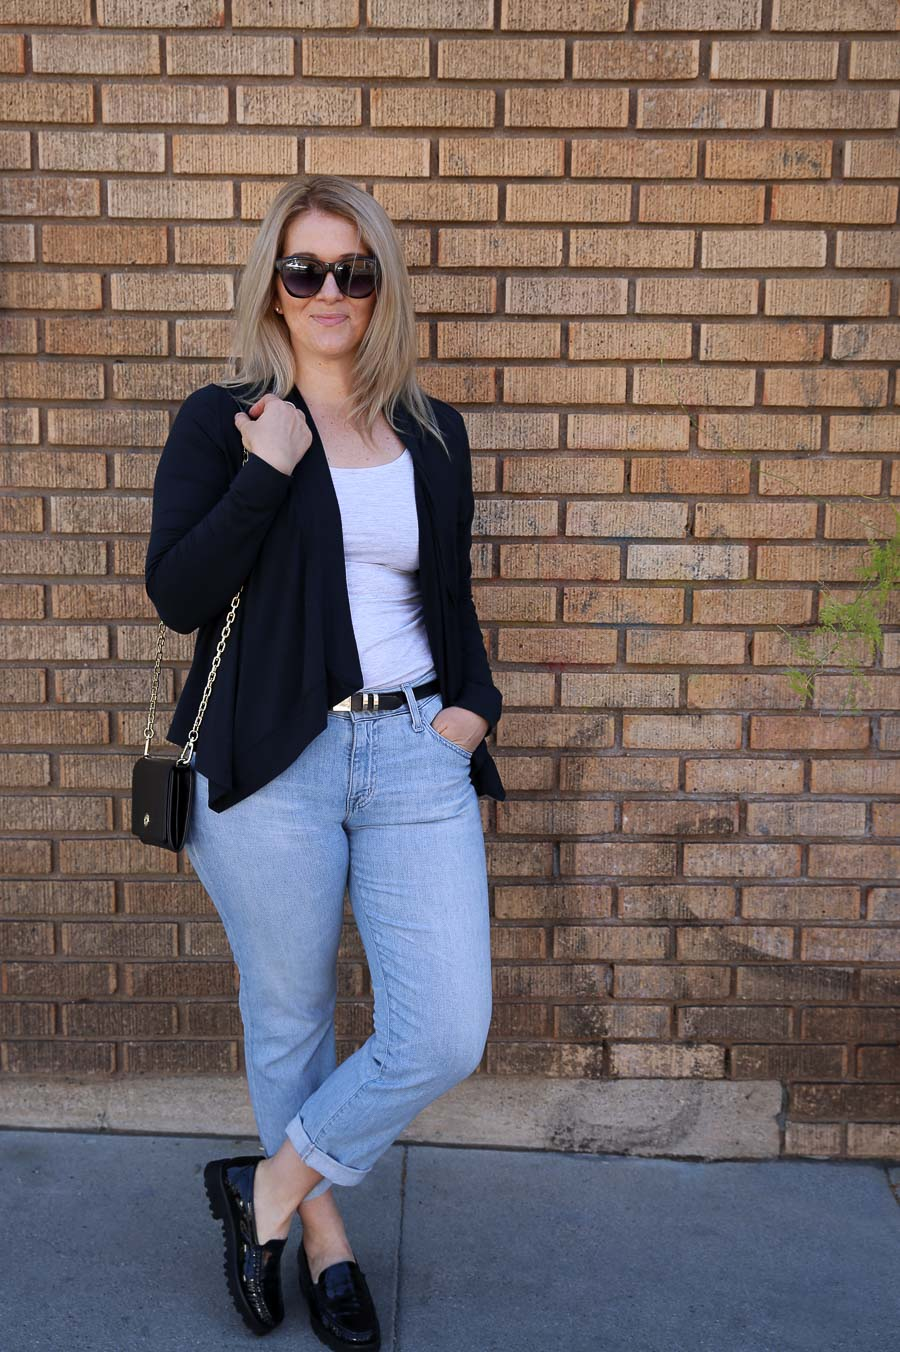 Postpartum Clothing - Outfit Ideas with Jeans